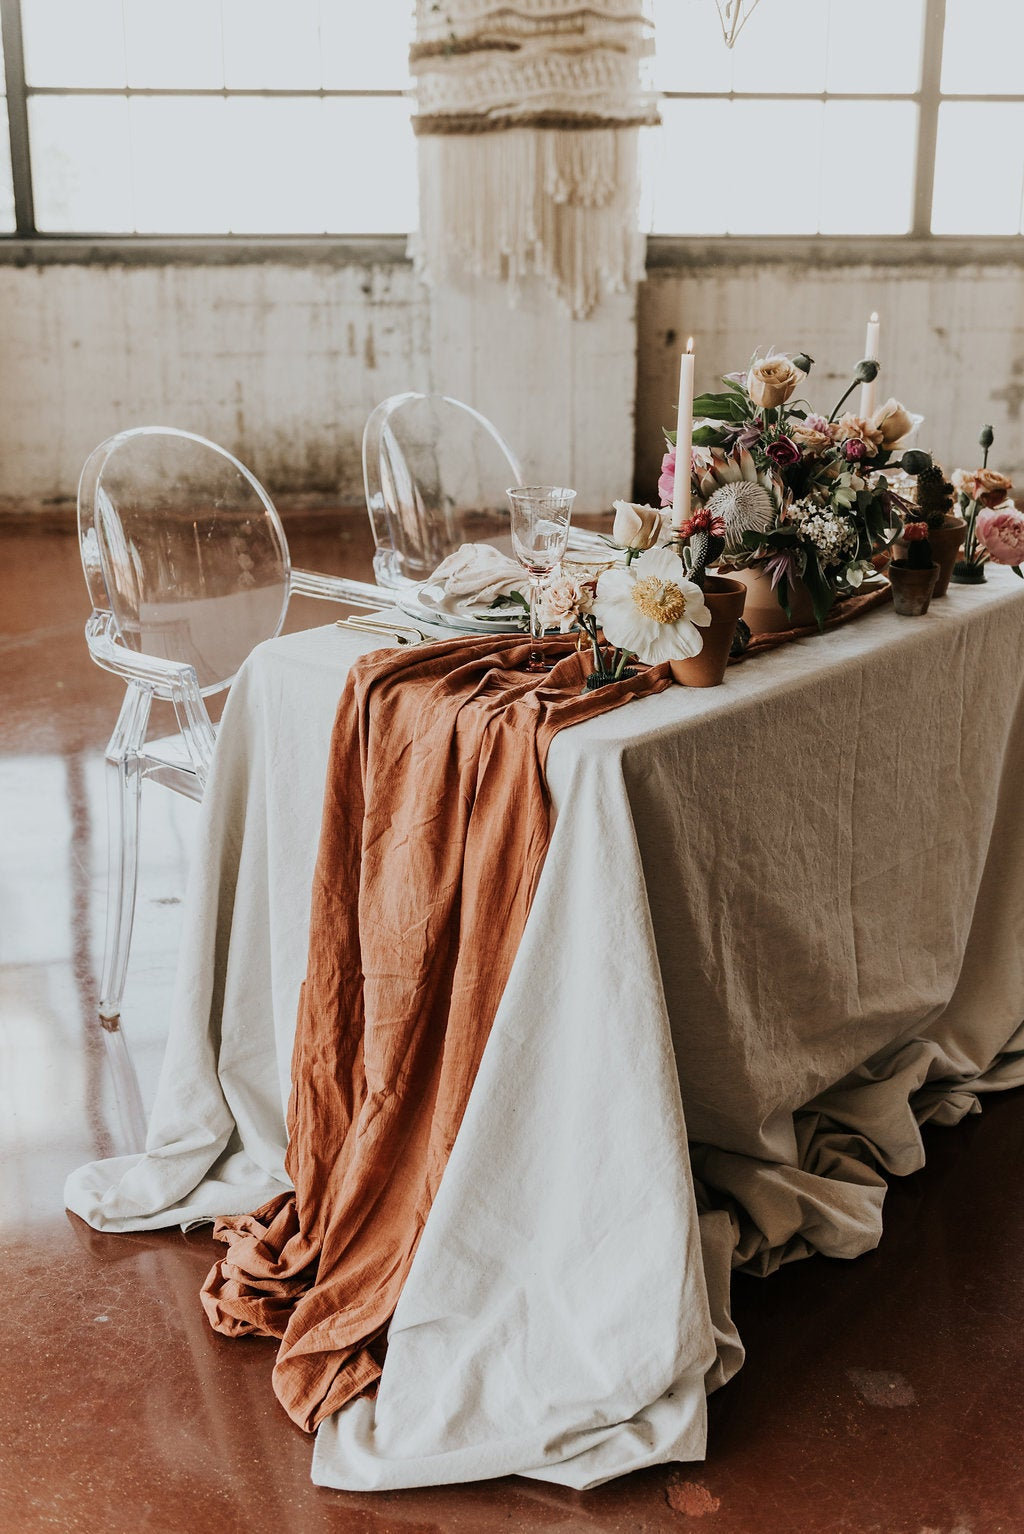 A sweetheart table decorated with fall wedding colors